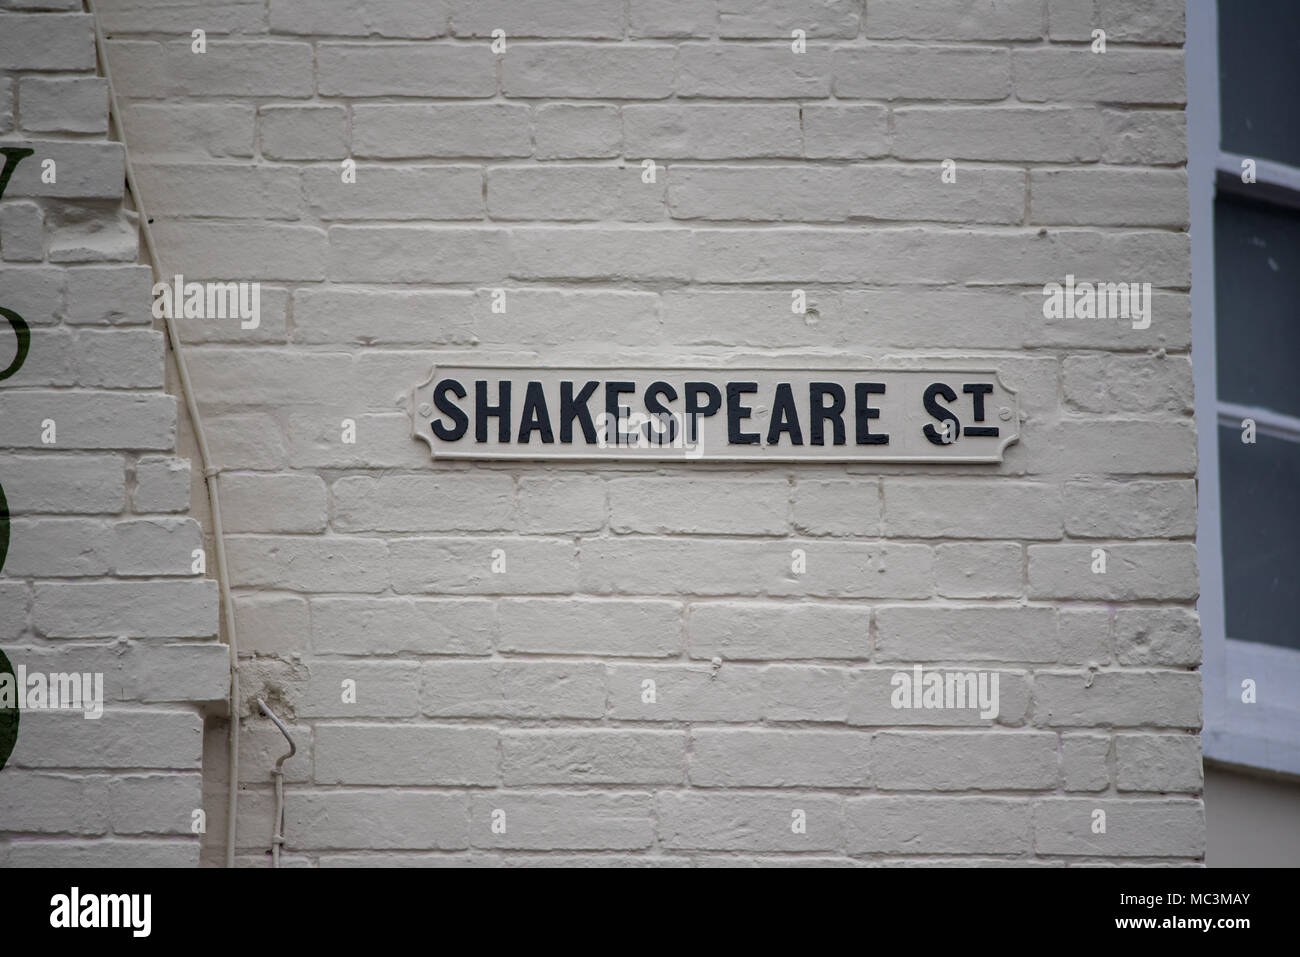 Shakesperare St sign on wall in Stret in Stratford upon Avon - Stock Image